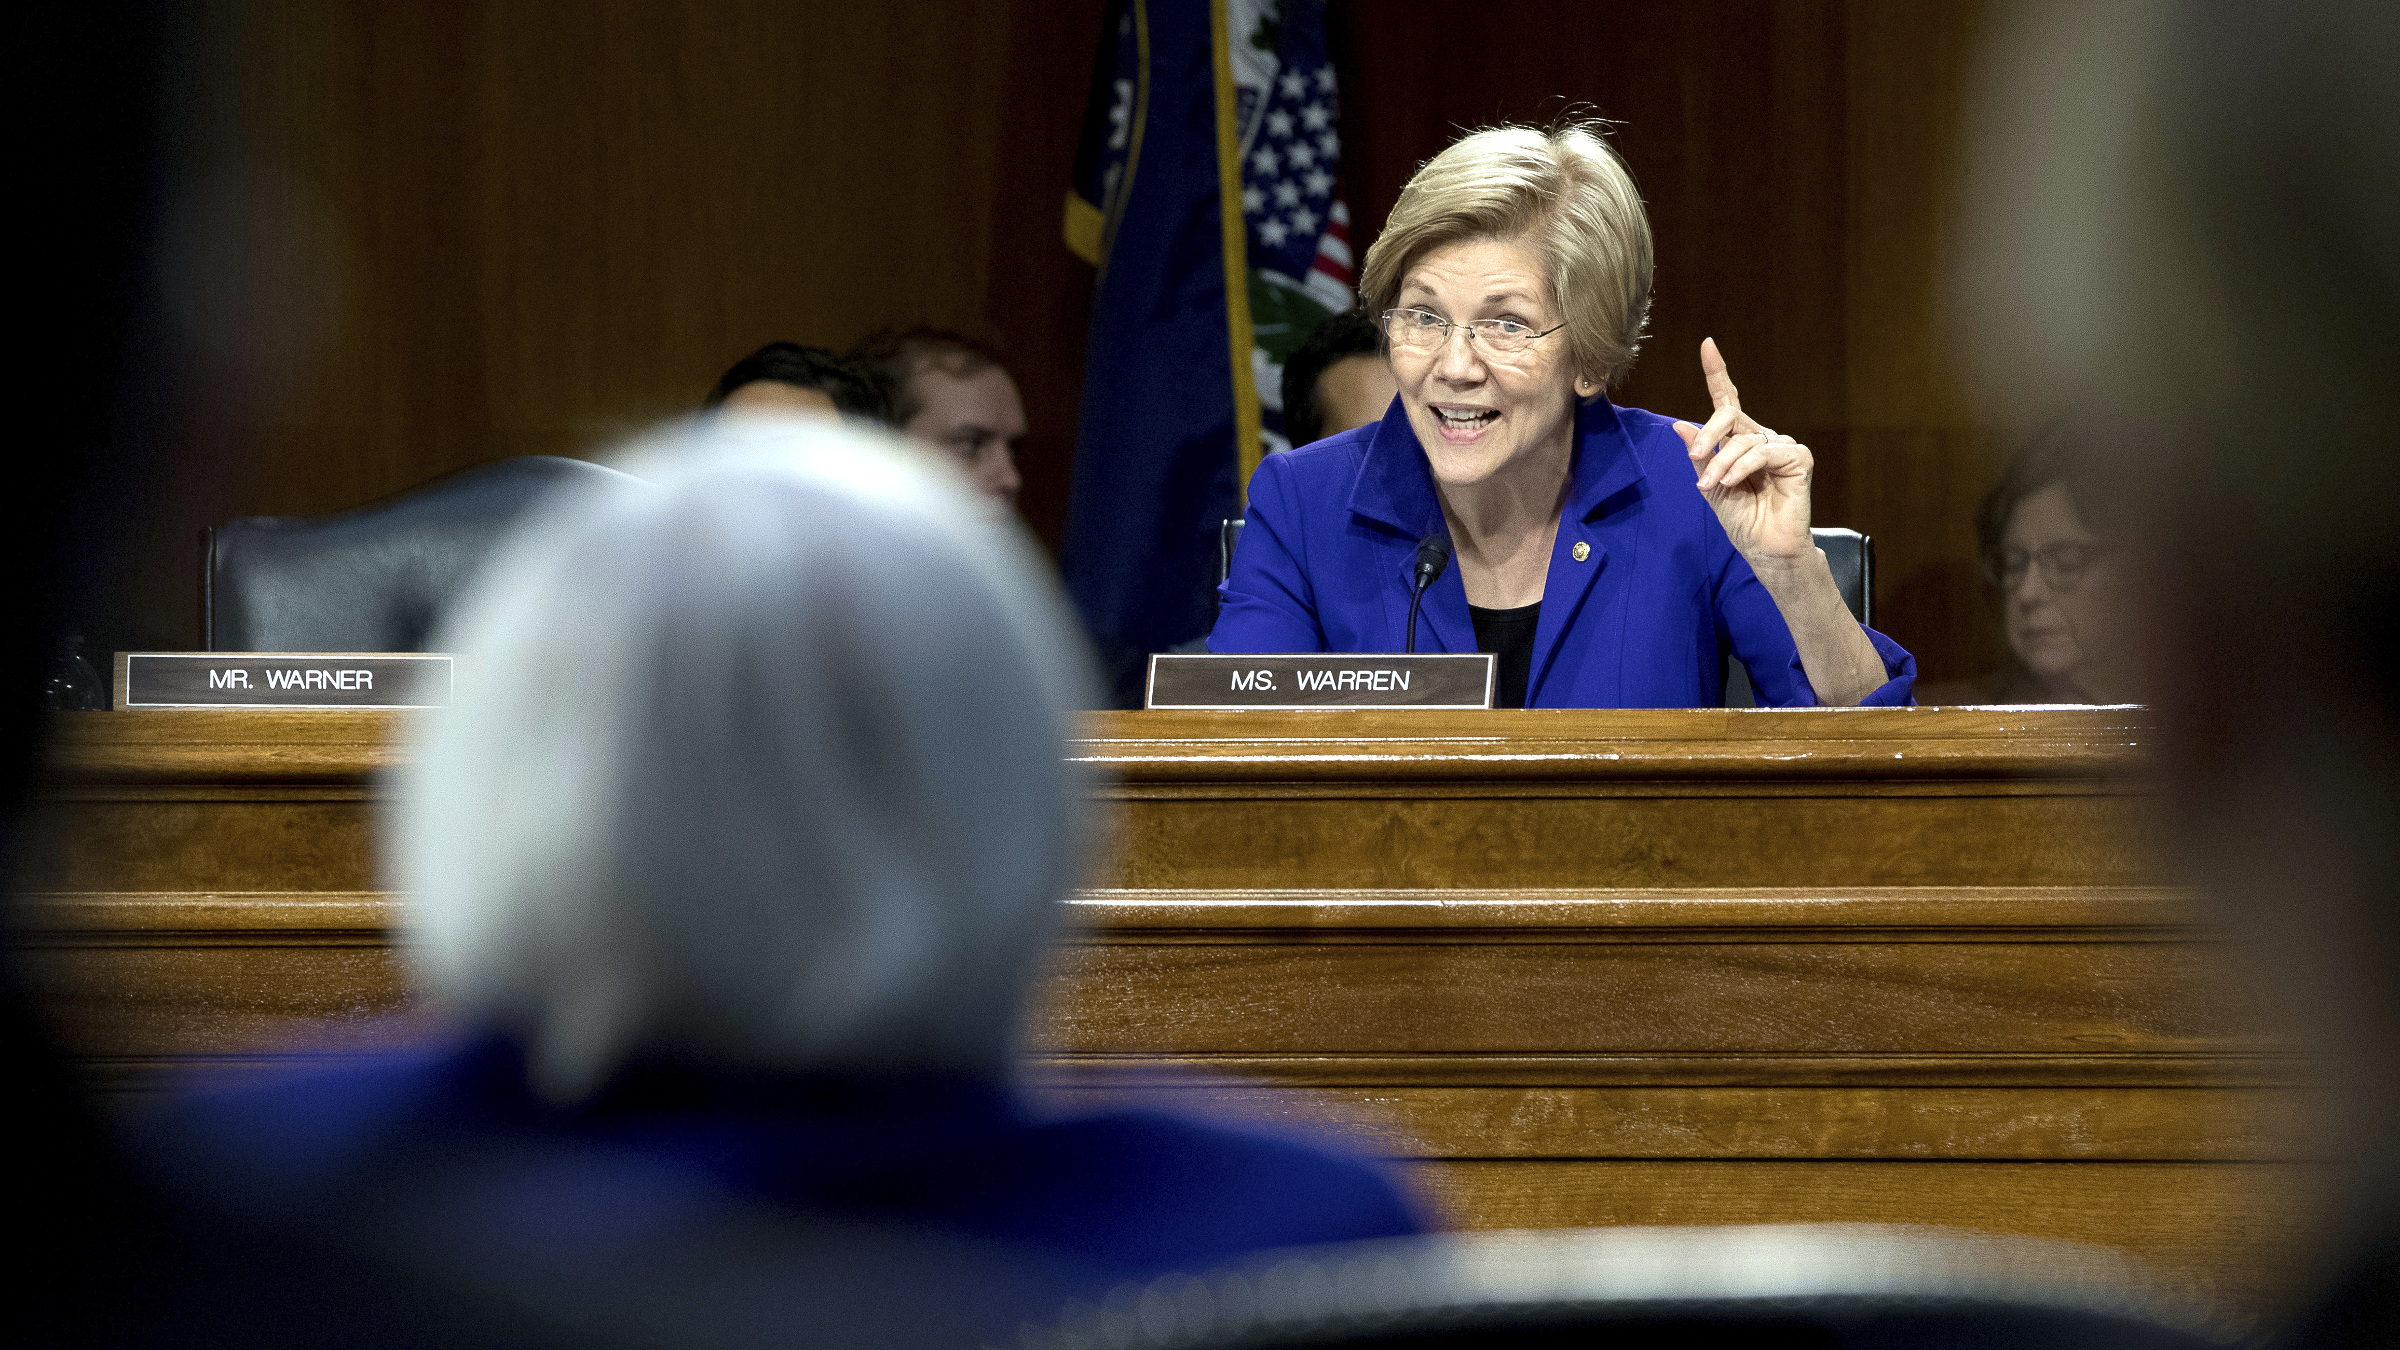 Senate Banking Committee member Sen. Elizabeth Warren, D-Mass., right, questions Federal Reserve Chair Janet Yellen on Capitol Hill in Washington, Tuesday, Feb. 14, 2017, during the committee's hearing. Yellen said that the central bank still expects to raise interest rates gradually this year. But she said the Fed also recognizes the dangers of waiting too long to tighten credit.